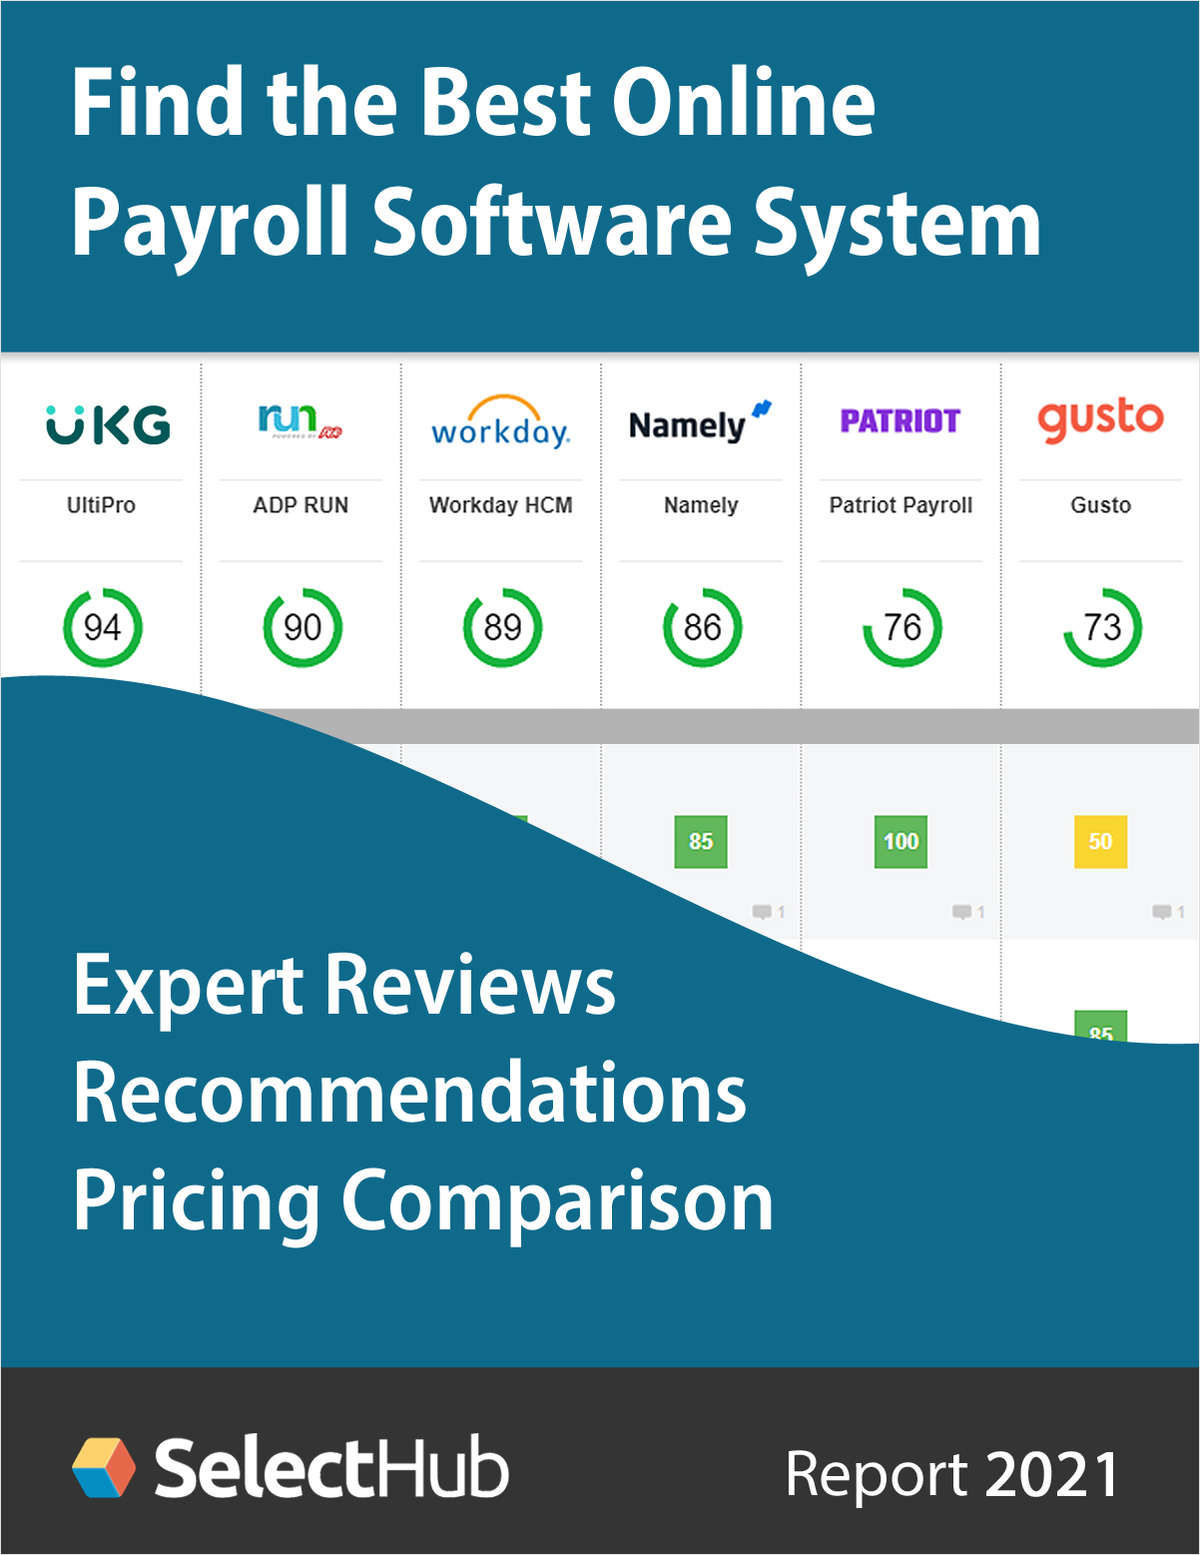 Find the Best Online Payroll Software--Expert Analysis, Recommendations & Pricing